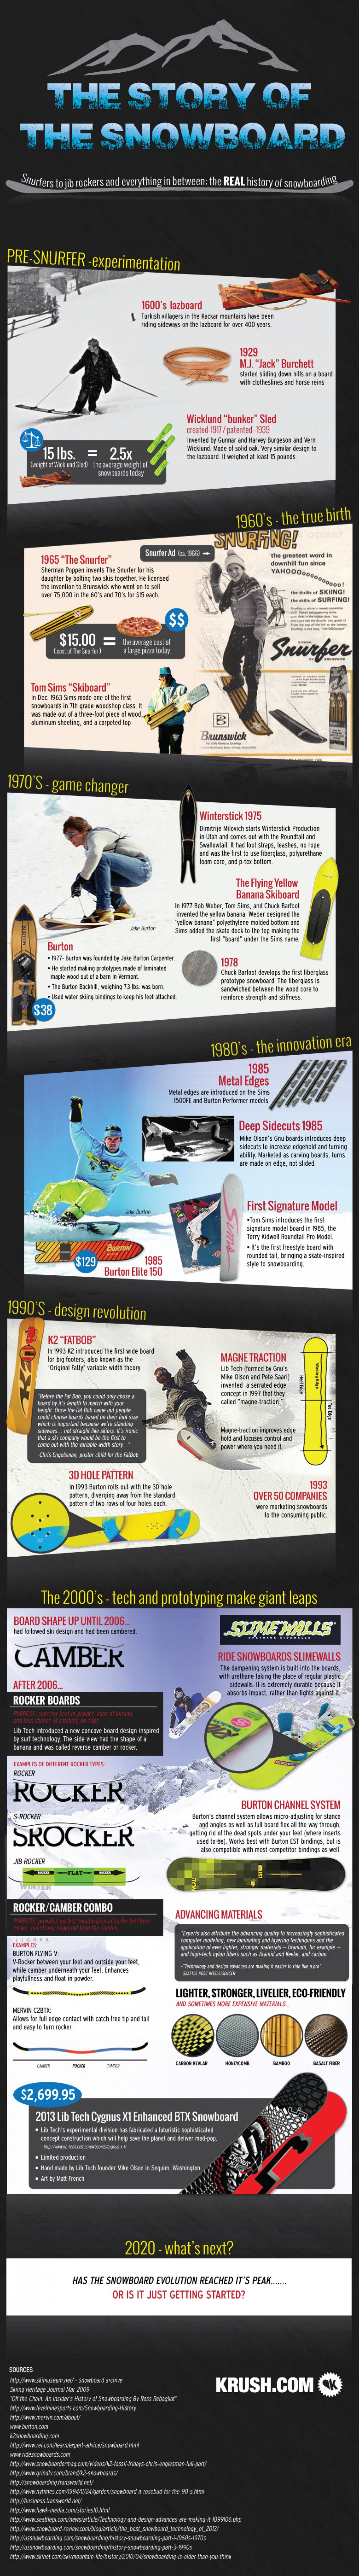 The History of Snowboarding | Visual.ly